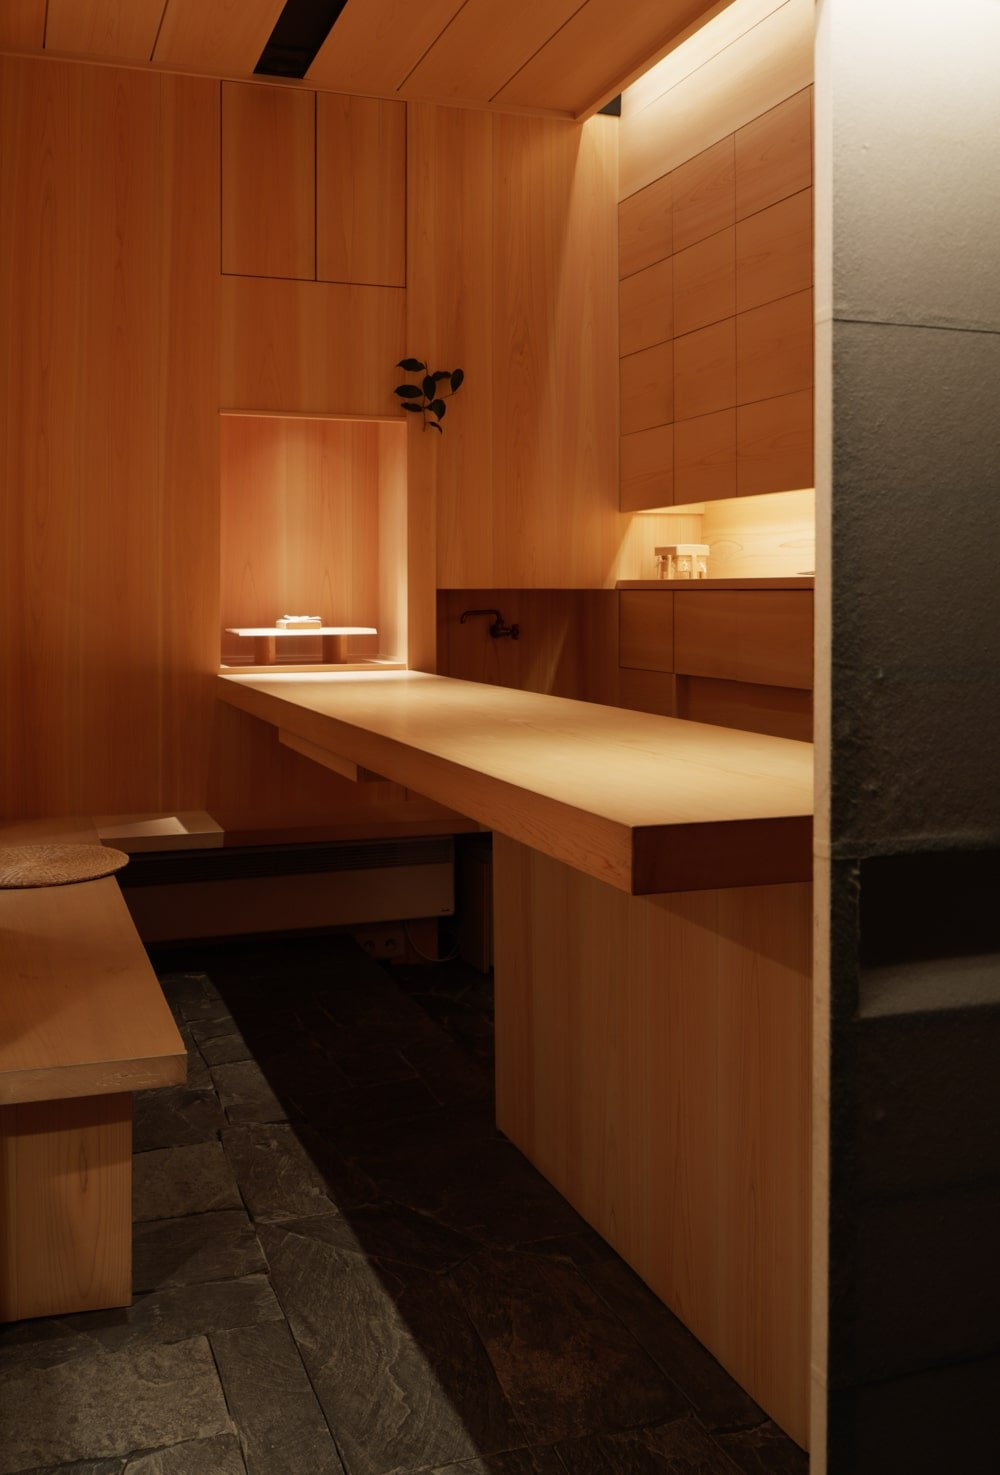 The main store has wooden structures that are built into the wooden walls giving the room a consistent tone.